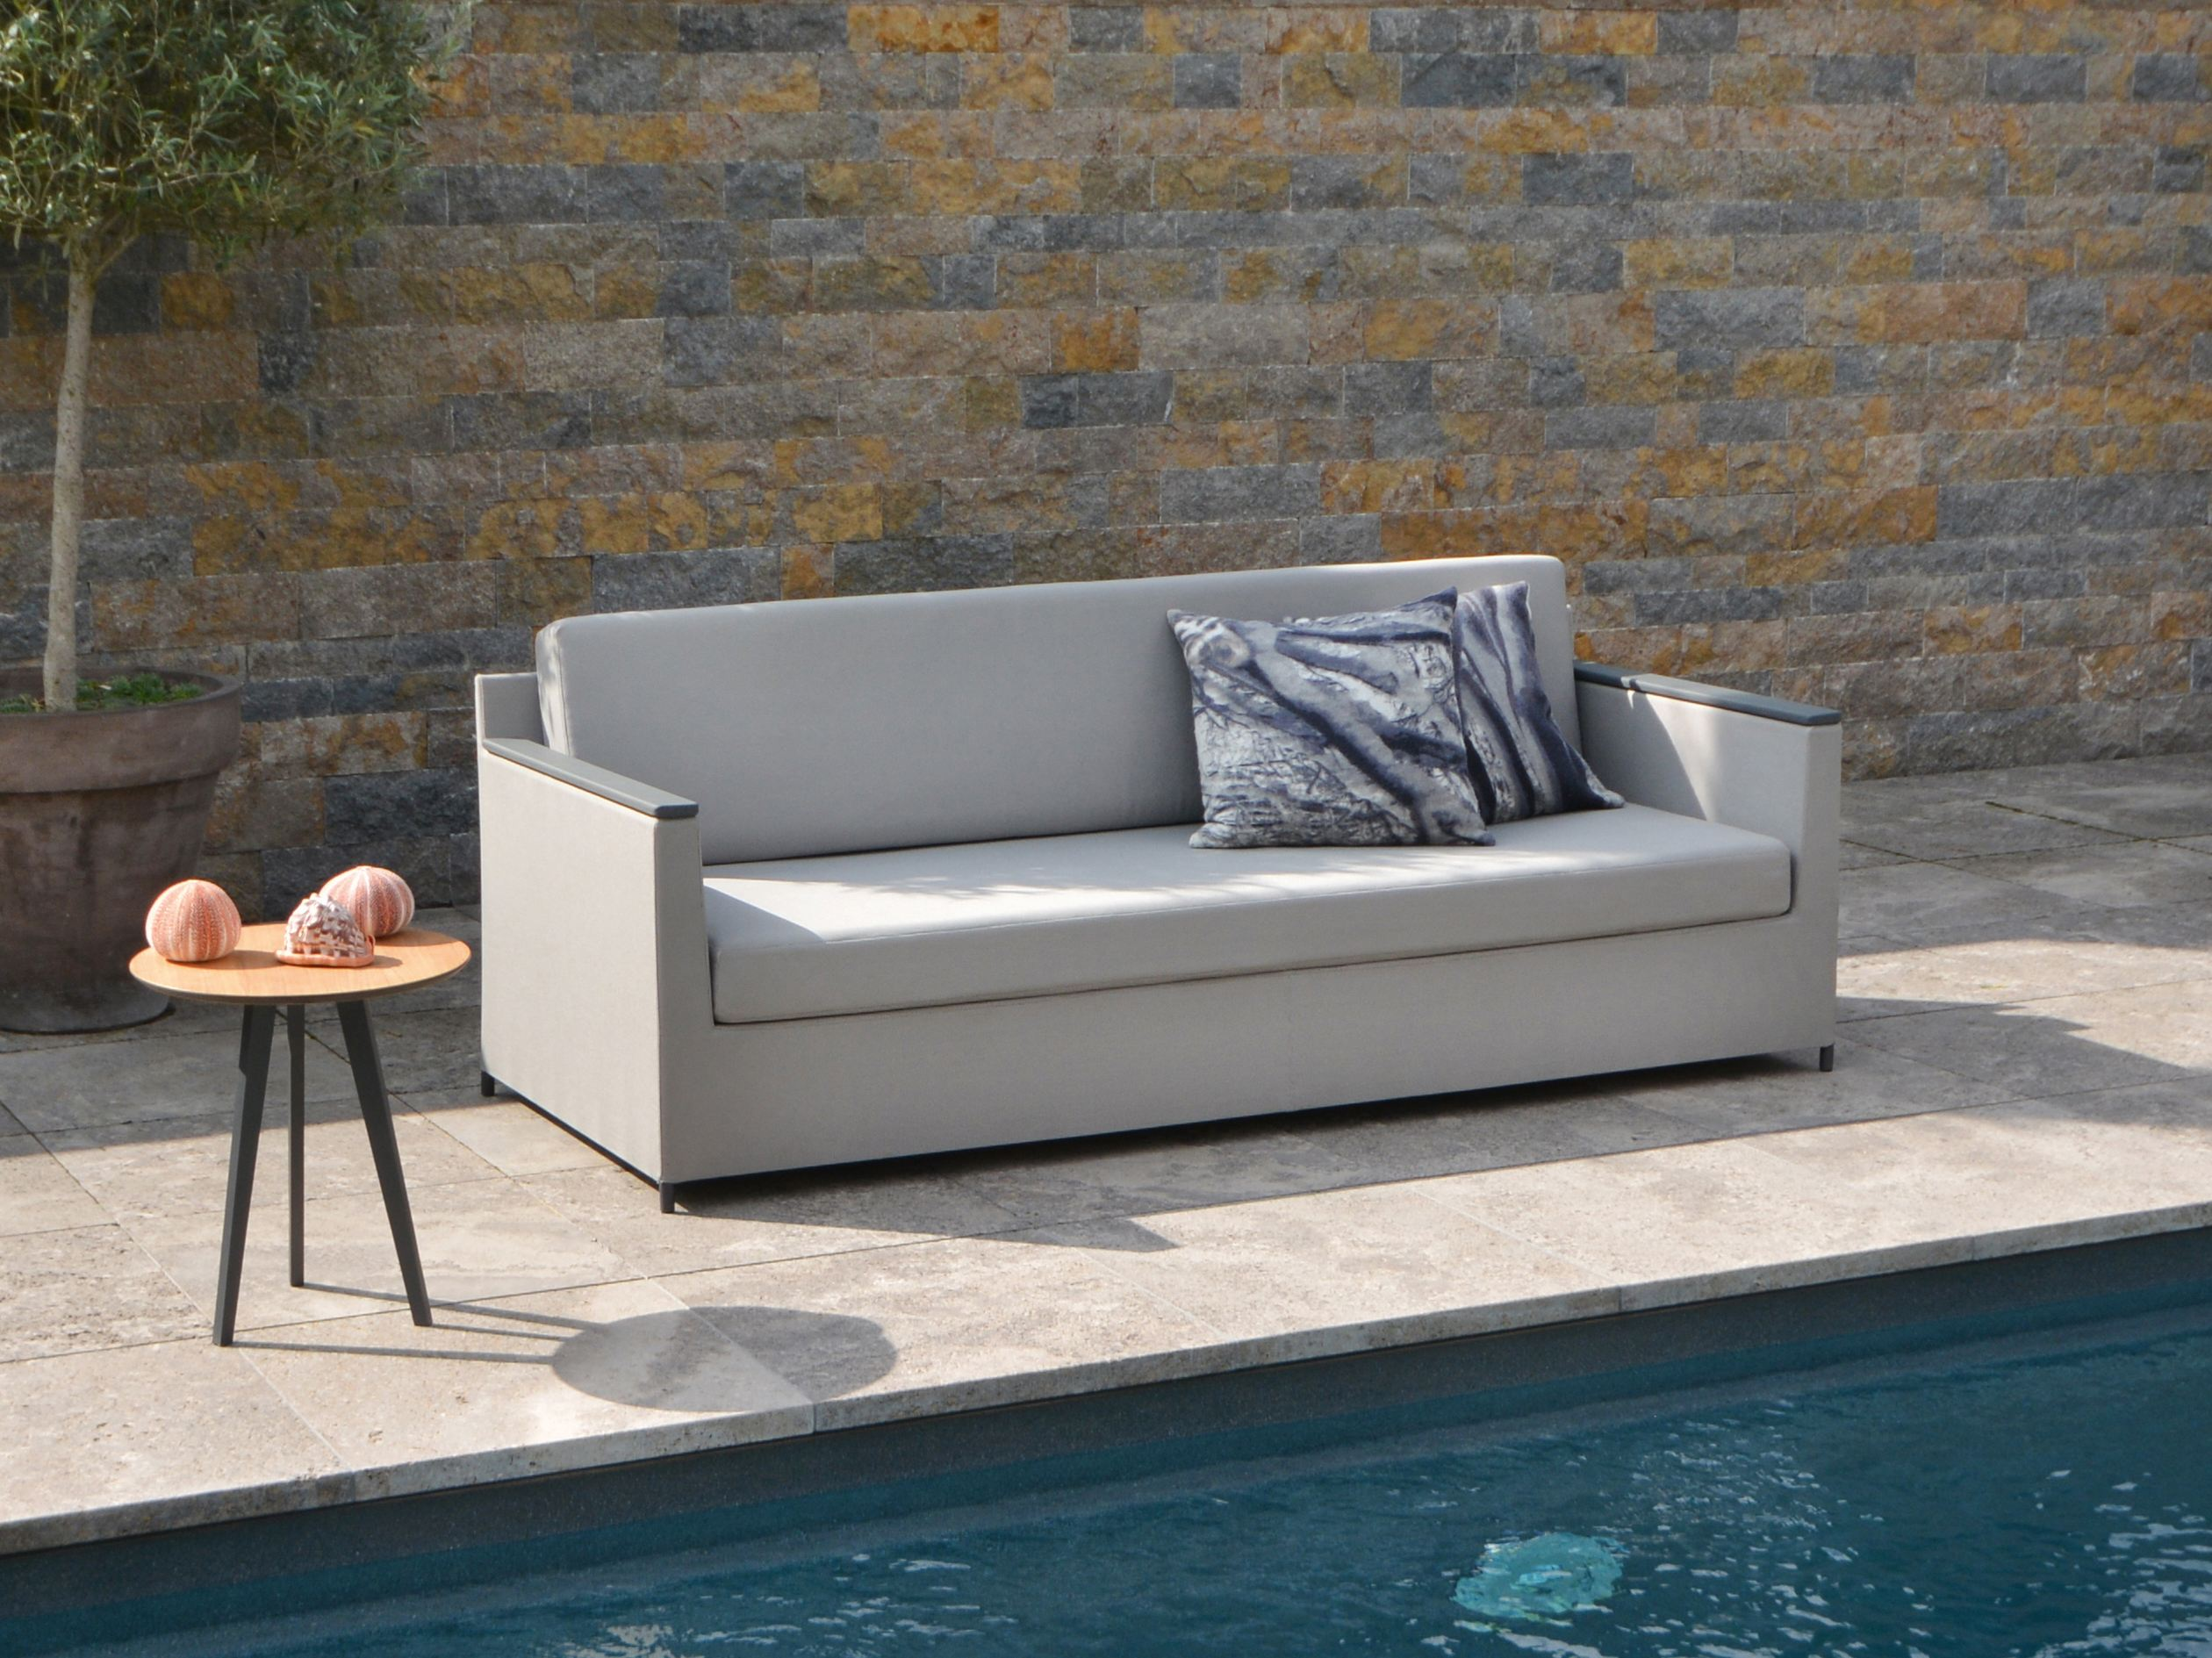 Gut ... Of Great Ray Outdoor Natural Sofa Ray Outdoor Collection By Bub Italia  Outdoor Design Antonio Citterio With Sofa Mbel With Sw Mbel With Luxus Mbel  Sale